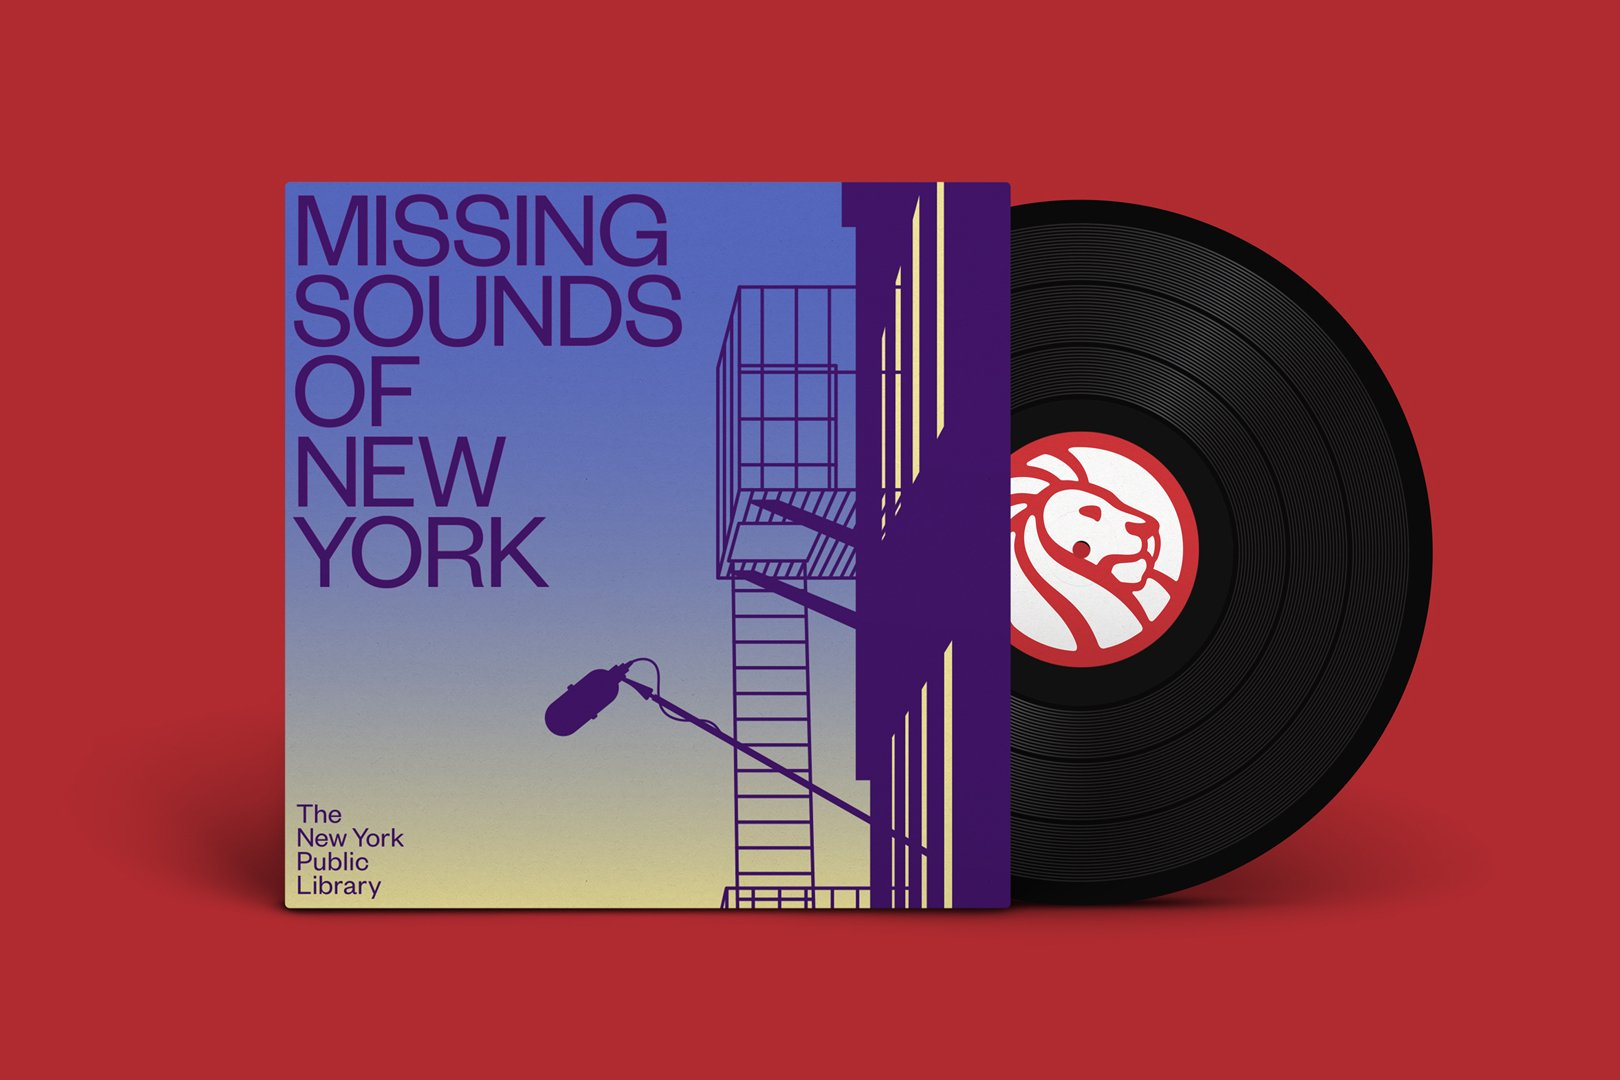 New York Public Library: Missing Sounds of New York